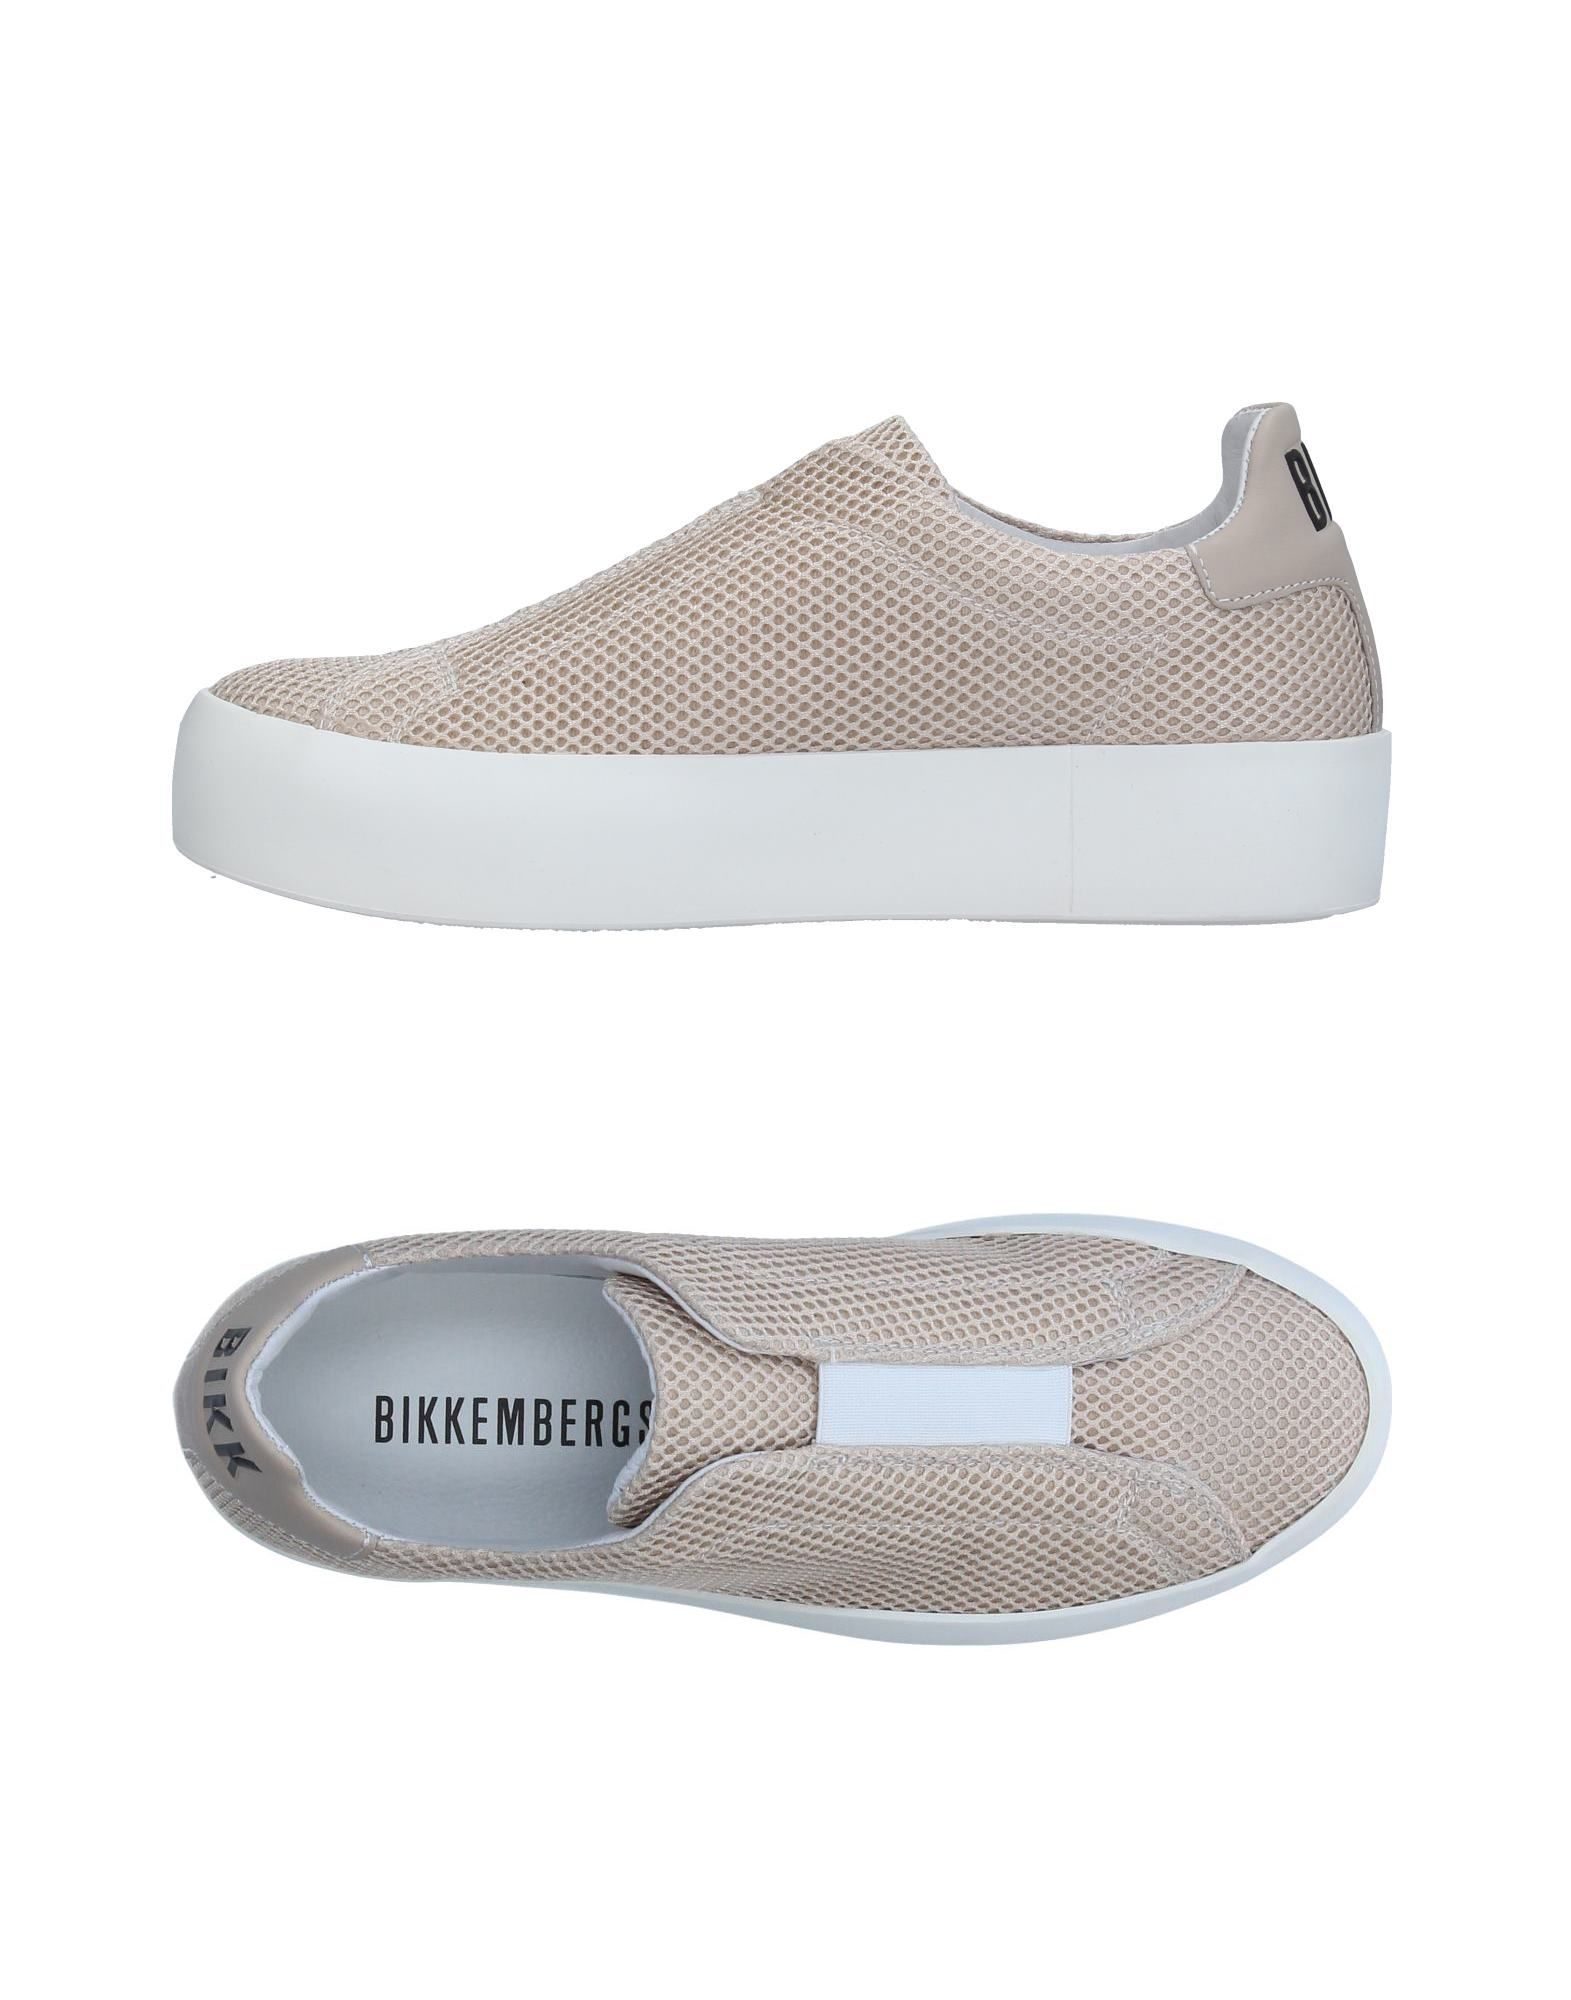 Moda Sneakers Bikkembergs 11333292EP Donna - 11333292EP Bikkembergs 2a8578